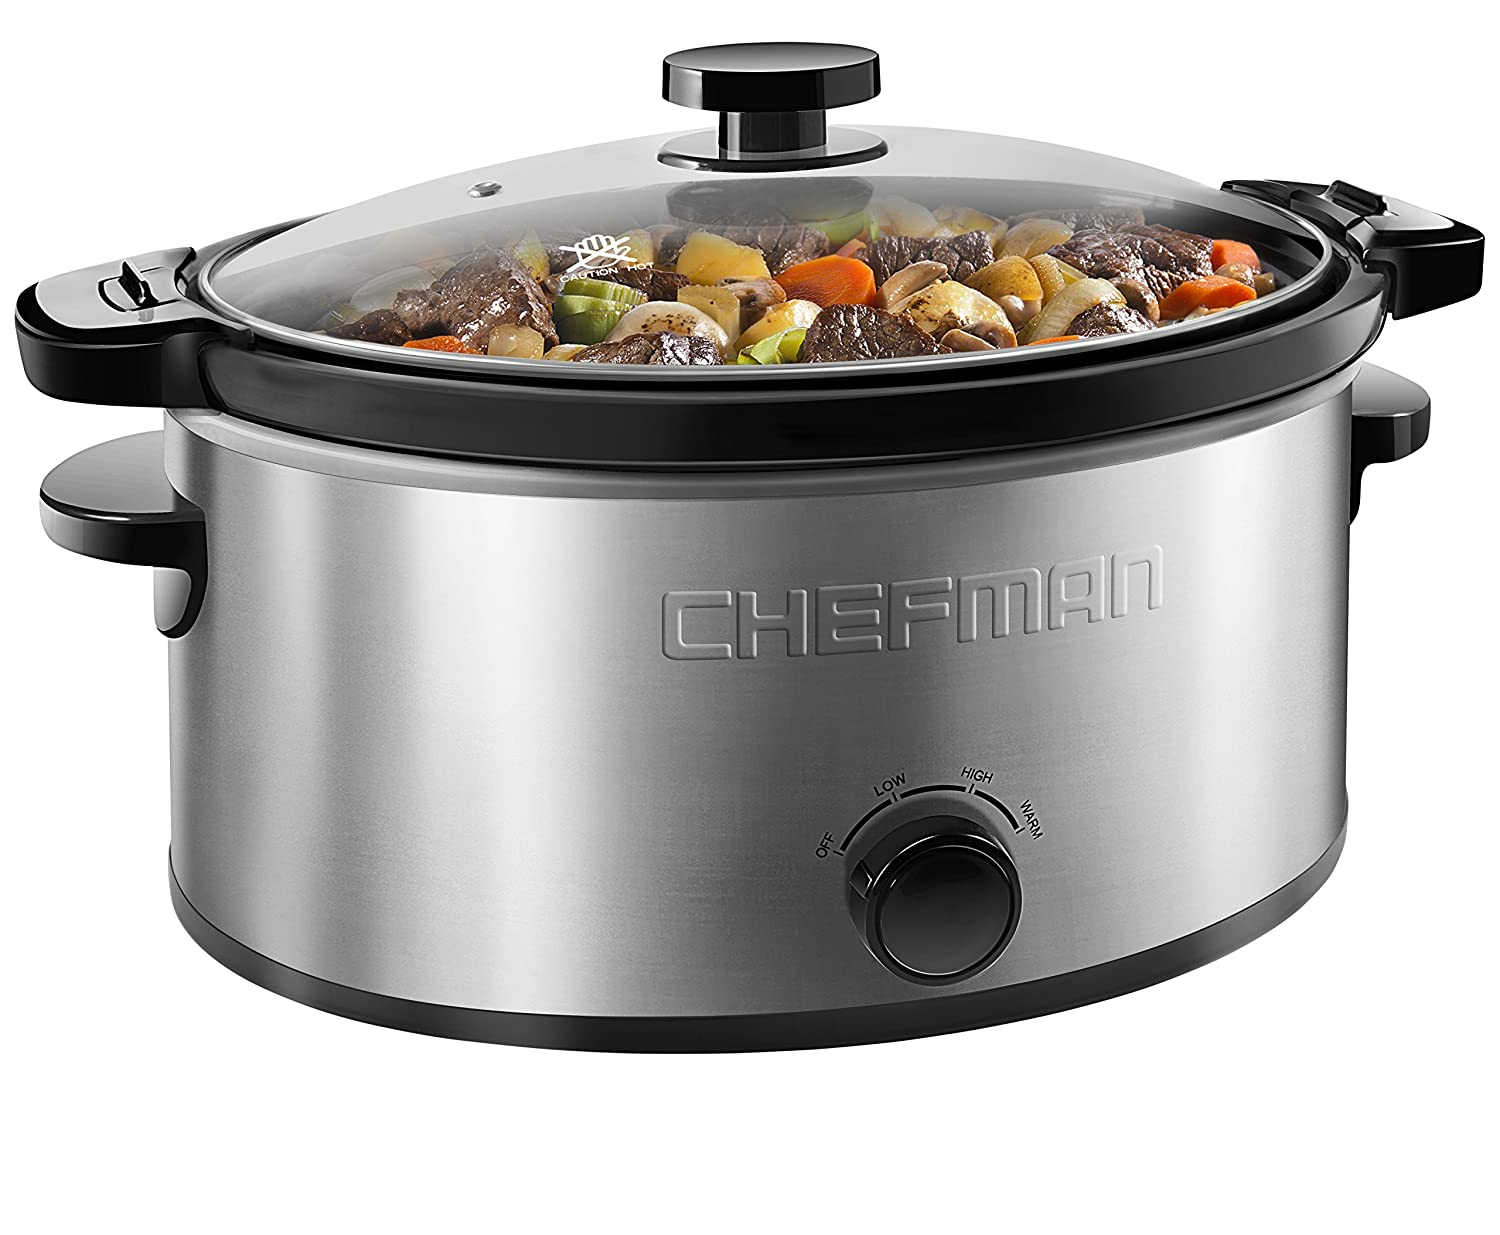 Chefman Locking Lid Slow Cooker Removable Stoneware for Easy Cleaning, 6 Quart Capacity, Stainless Steel